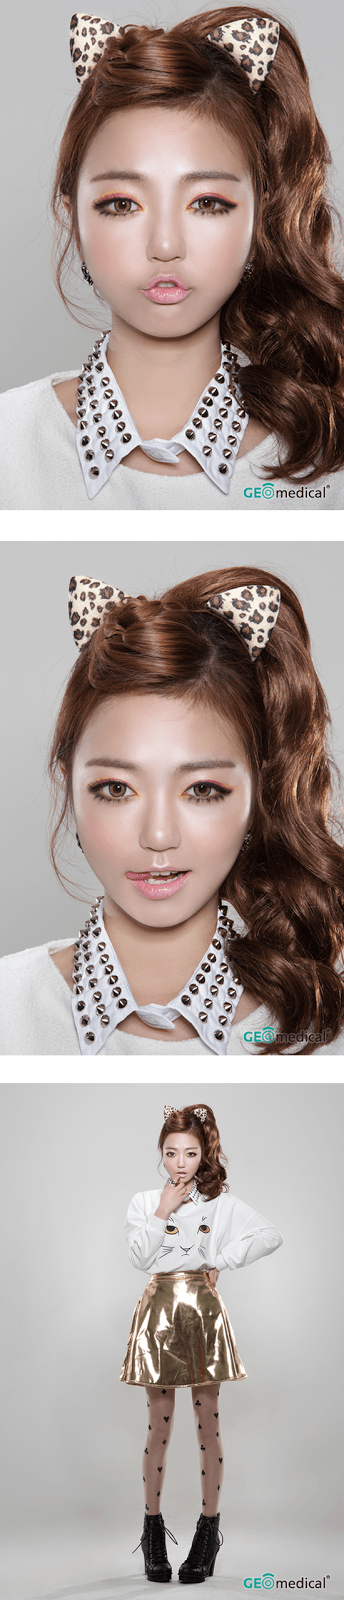 Geo HoliCat Barbie Cat Hazel Circle Lenses (Colored Contacts) | PinkyParadise #coloredeyecontacts